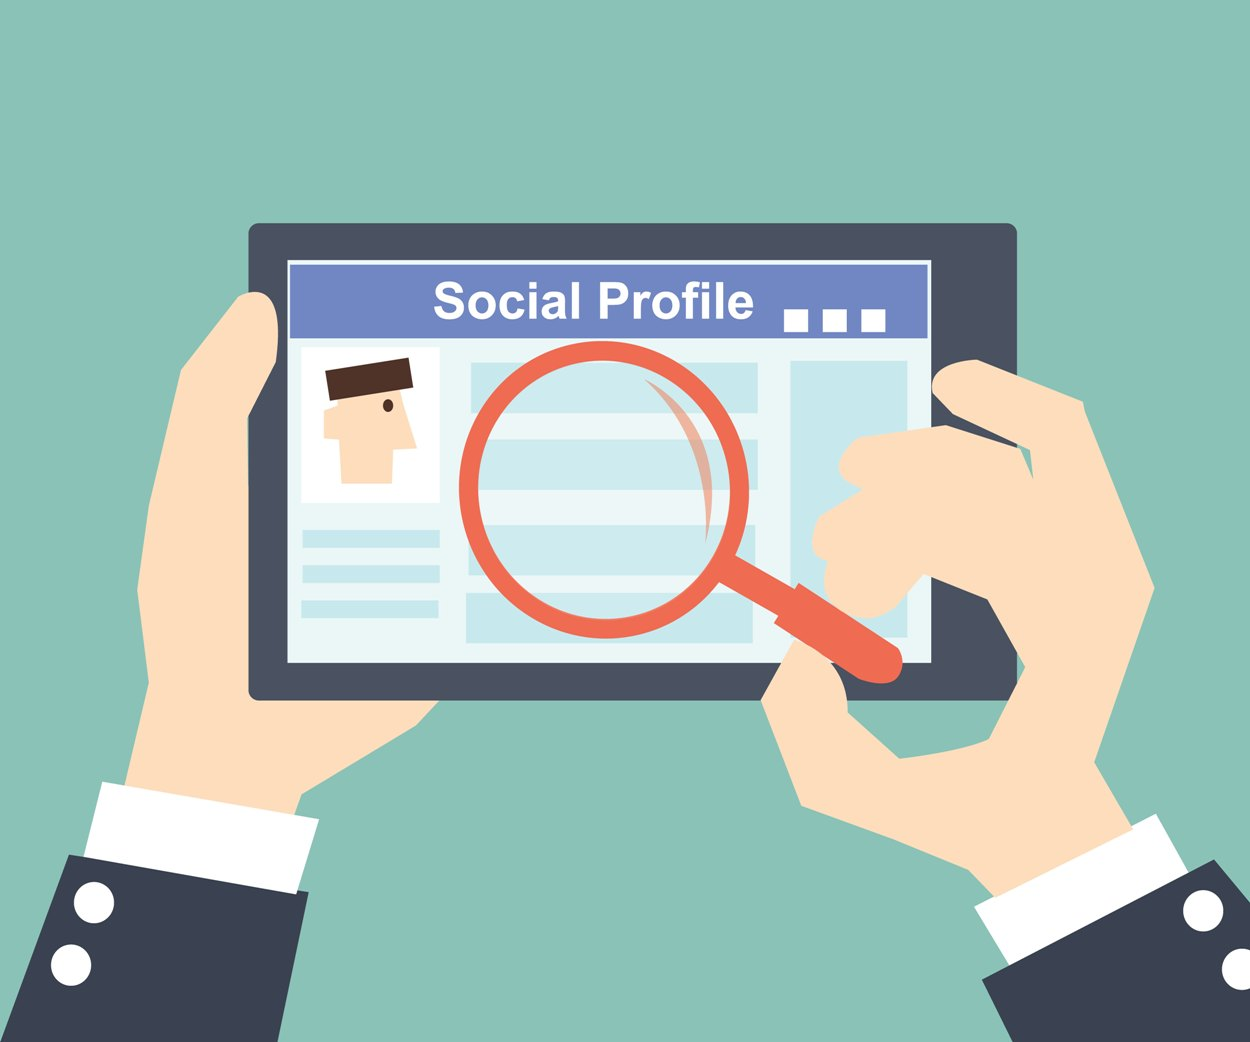 social profile with magnifying glass sm.jpg